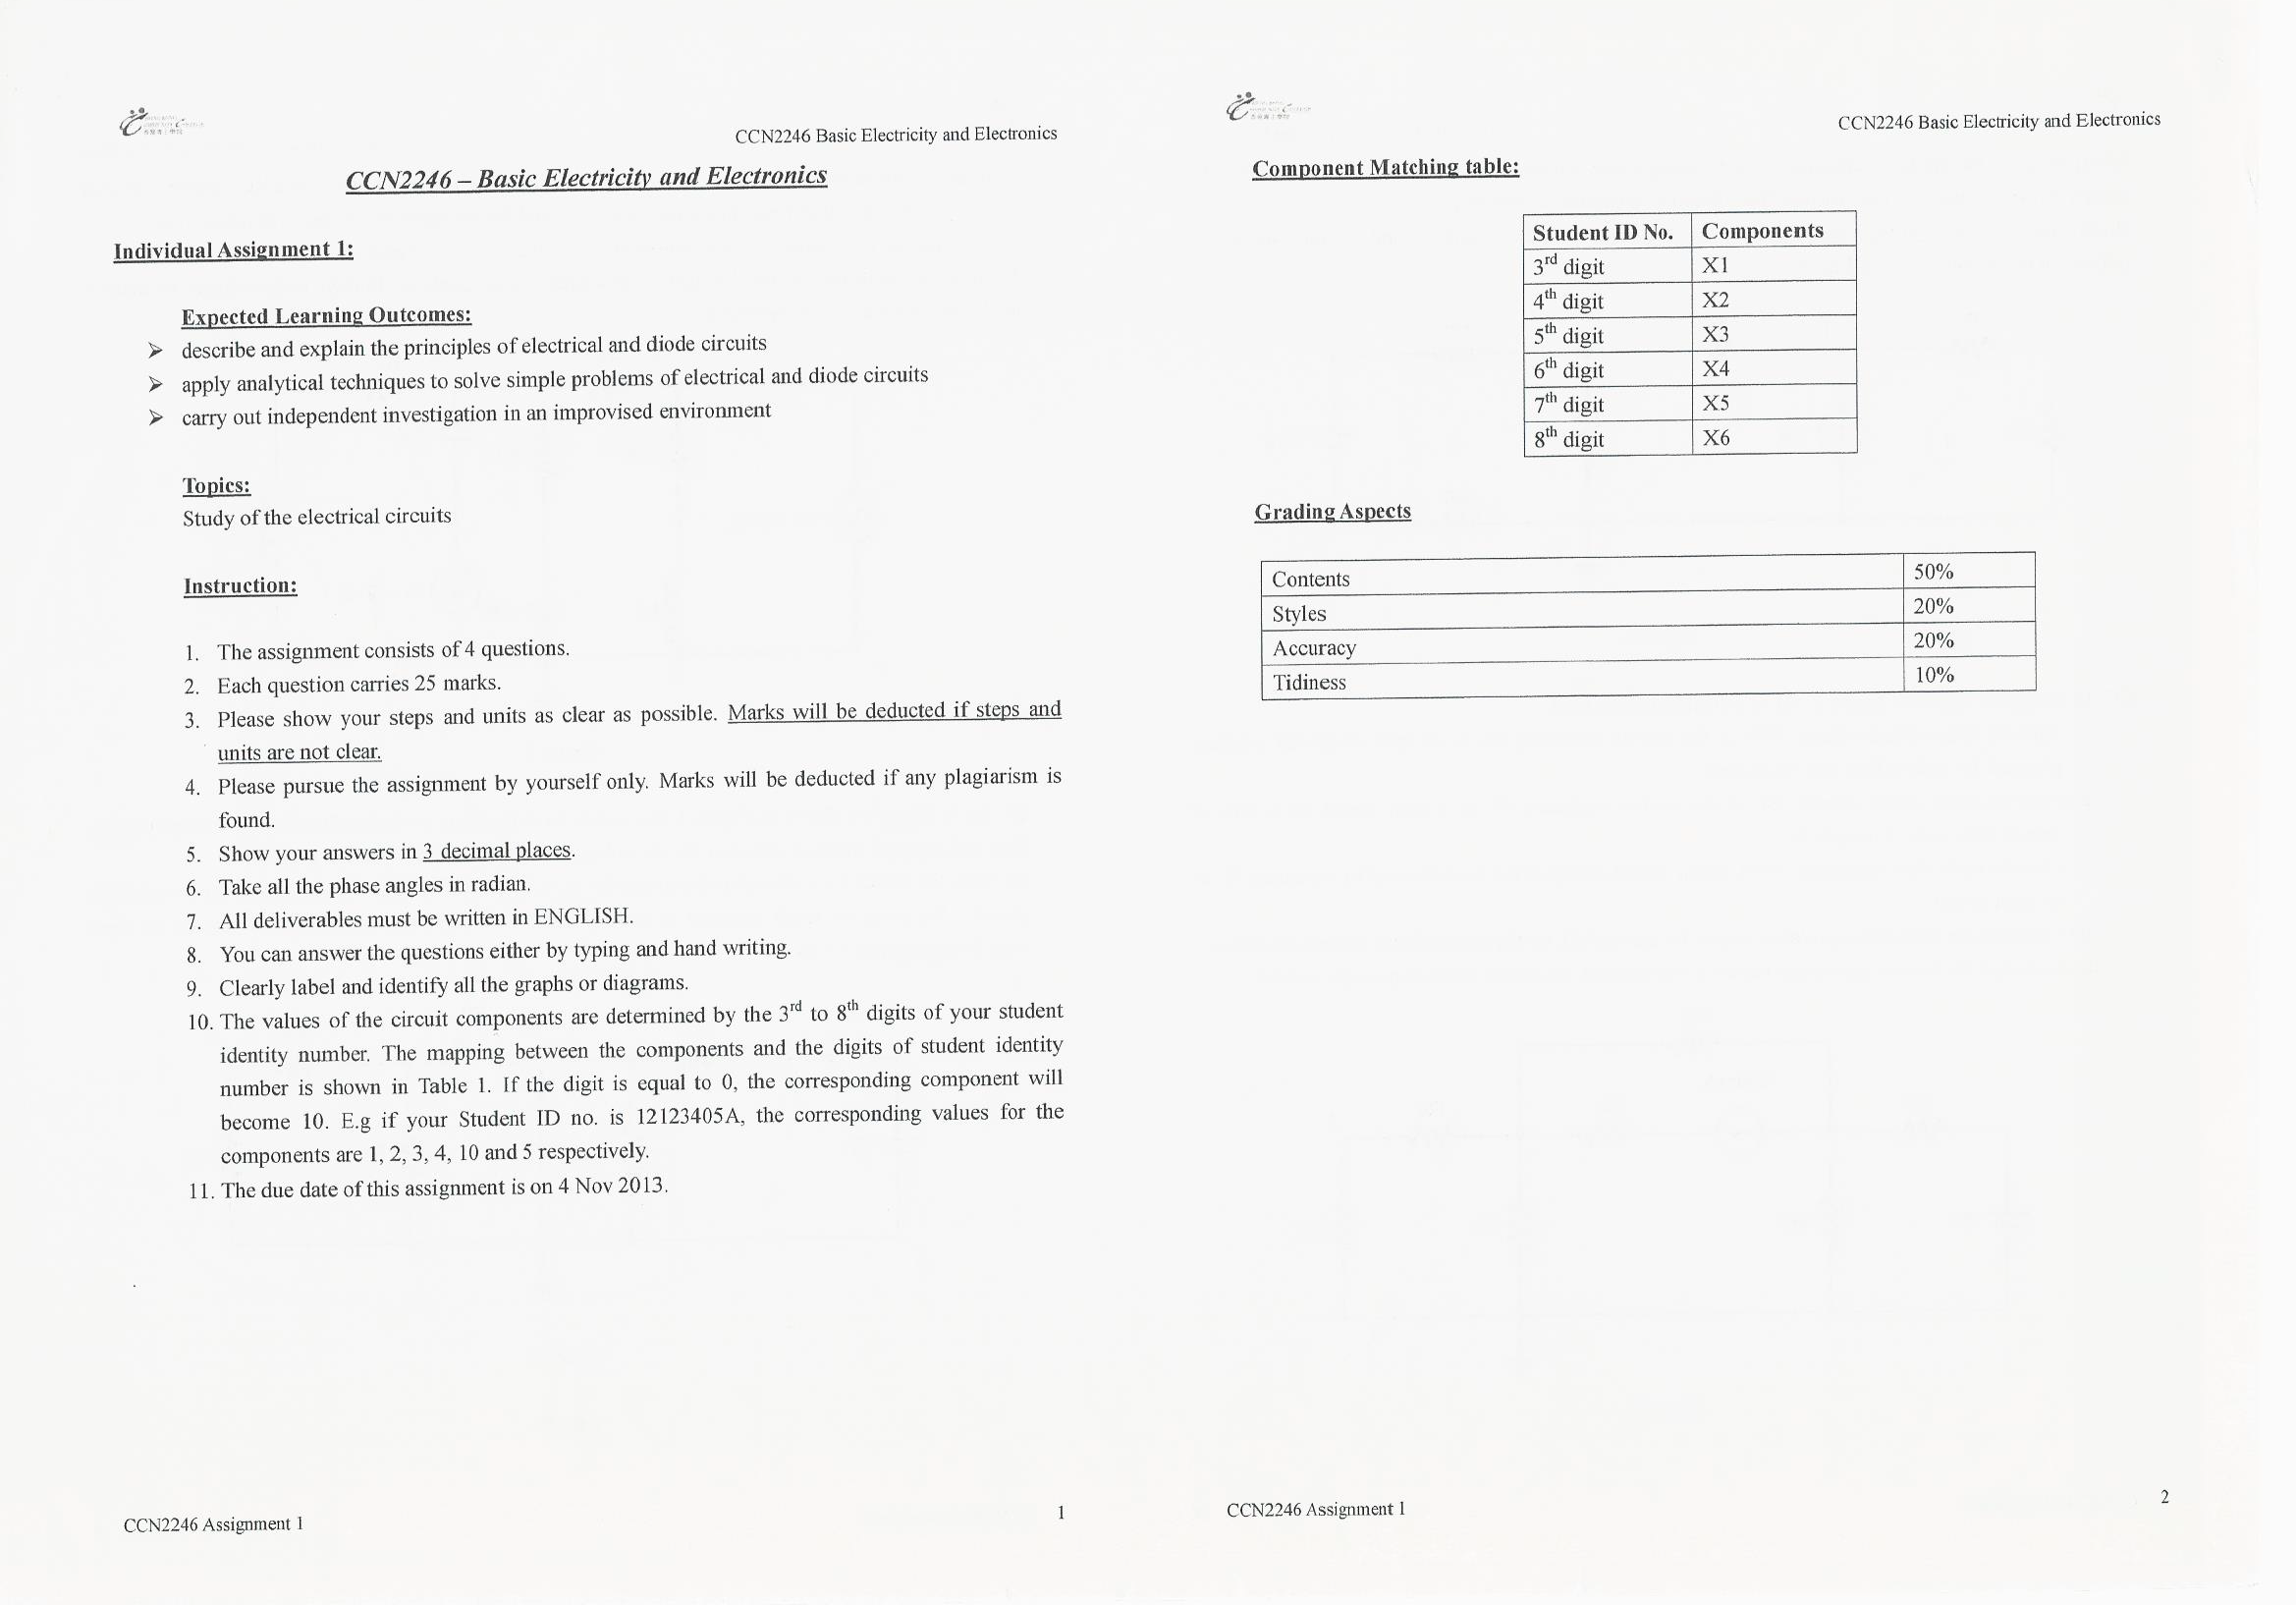 Polyu Ccn2246 Basic Electricity And Electronics Assignment 1 Payhip Basicelectricity